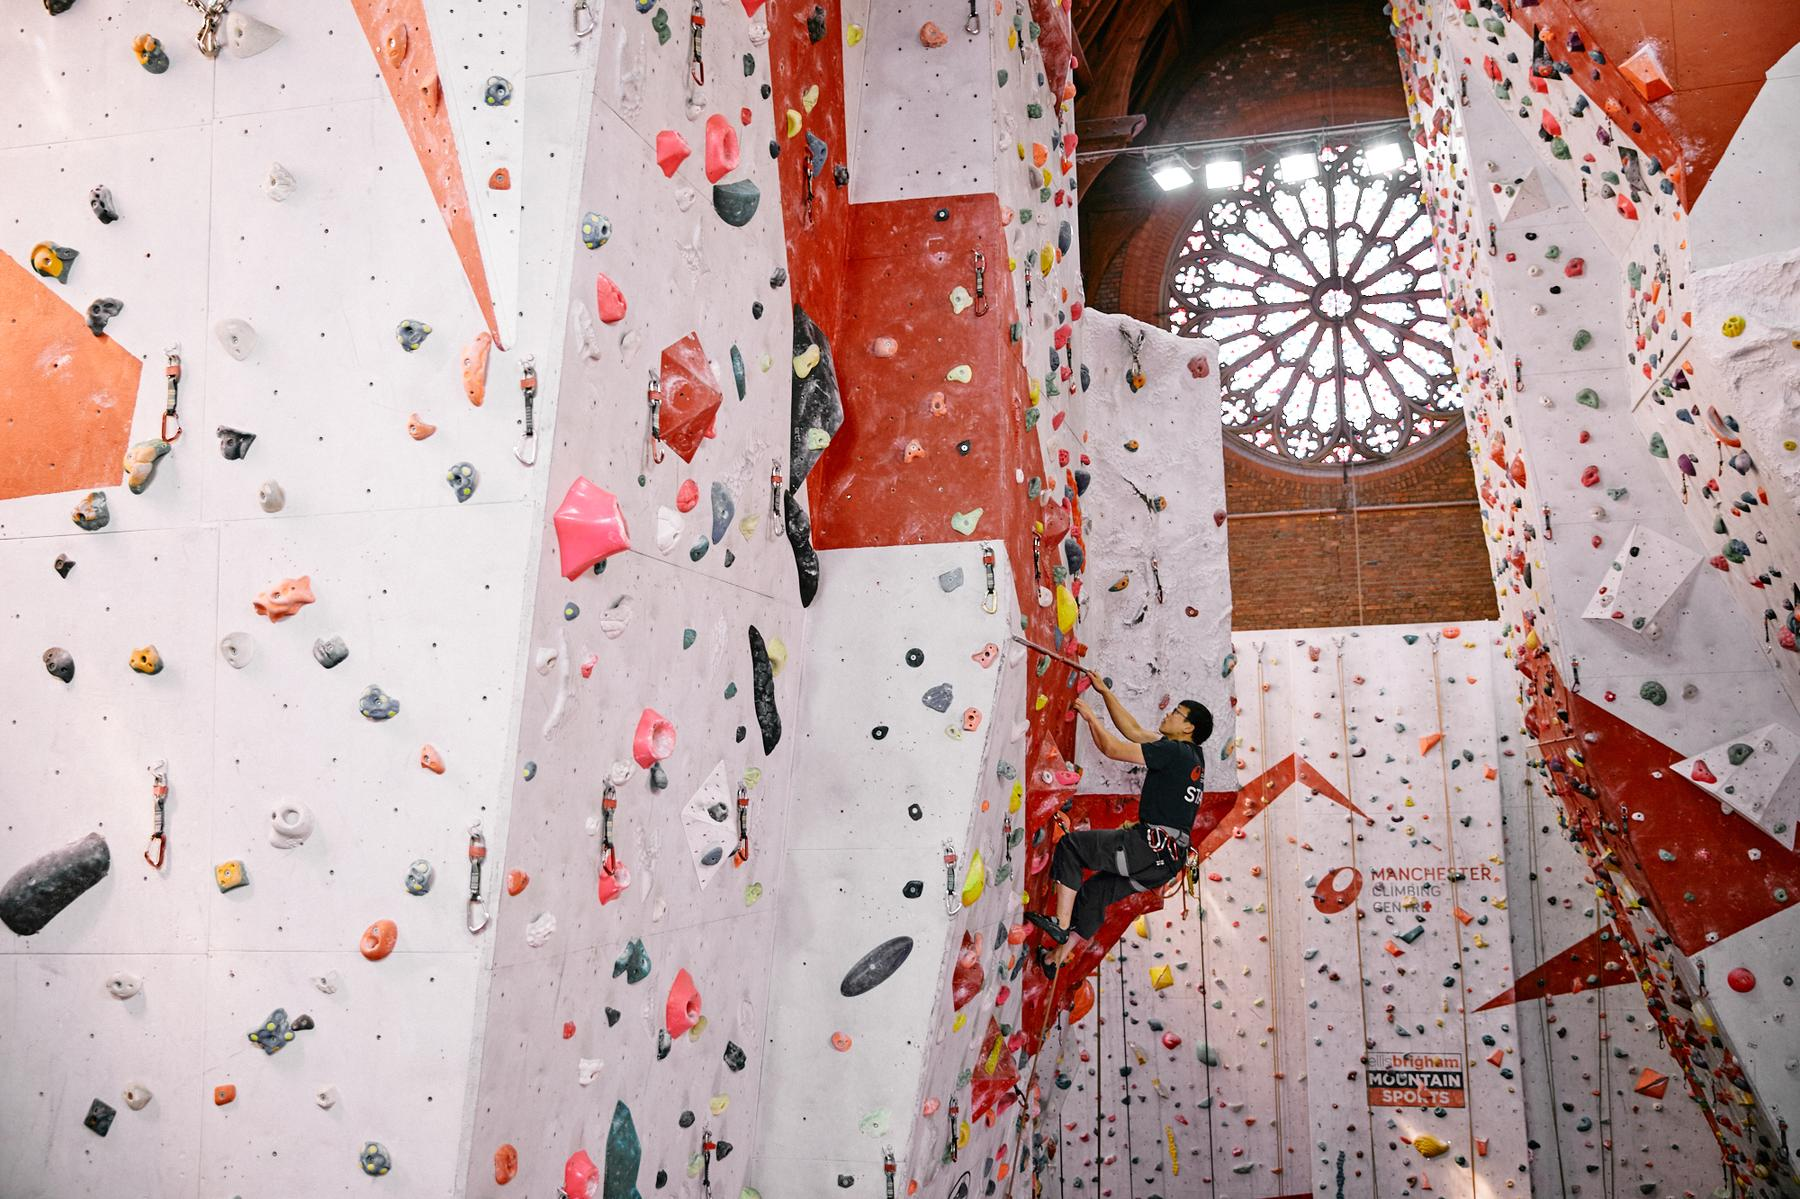 Introduction To Climbing — Here's What You Need To Know